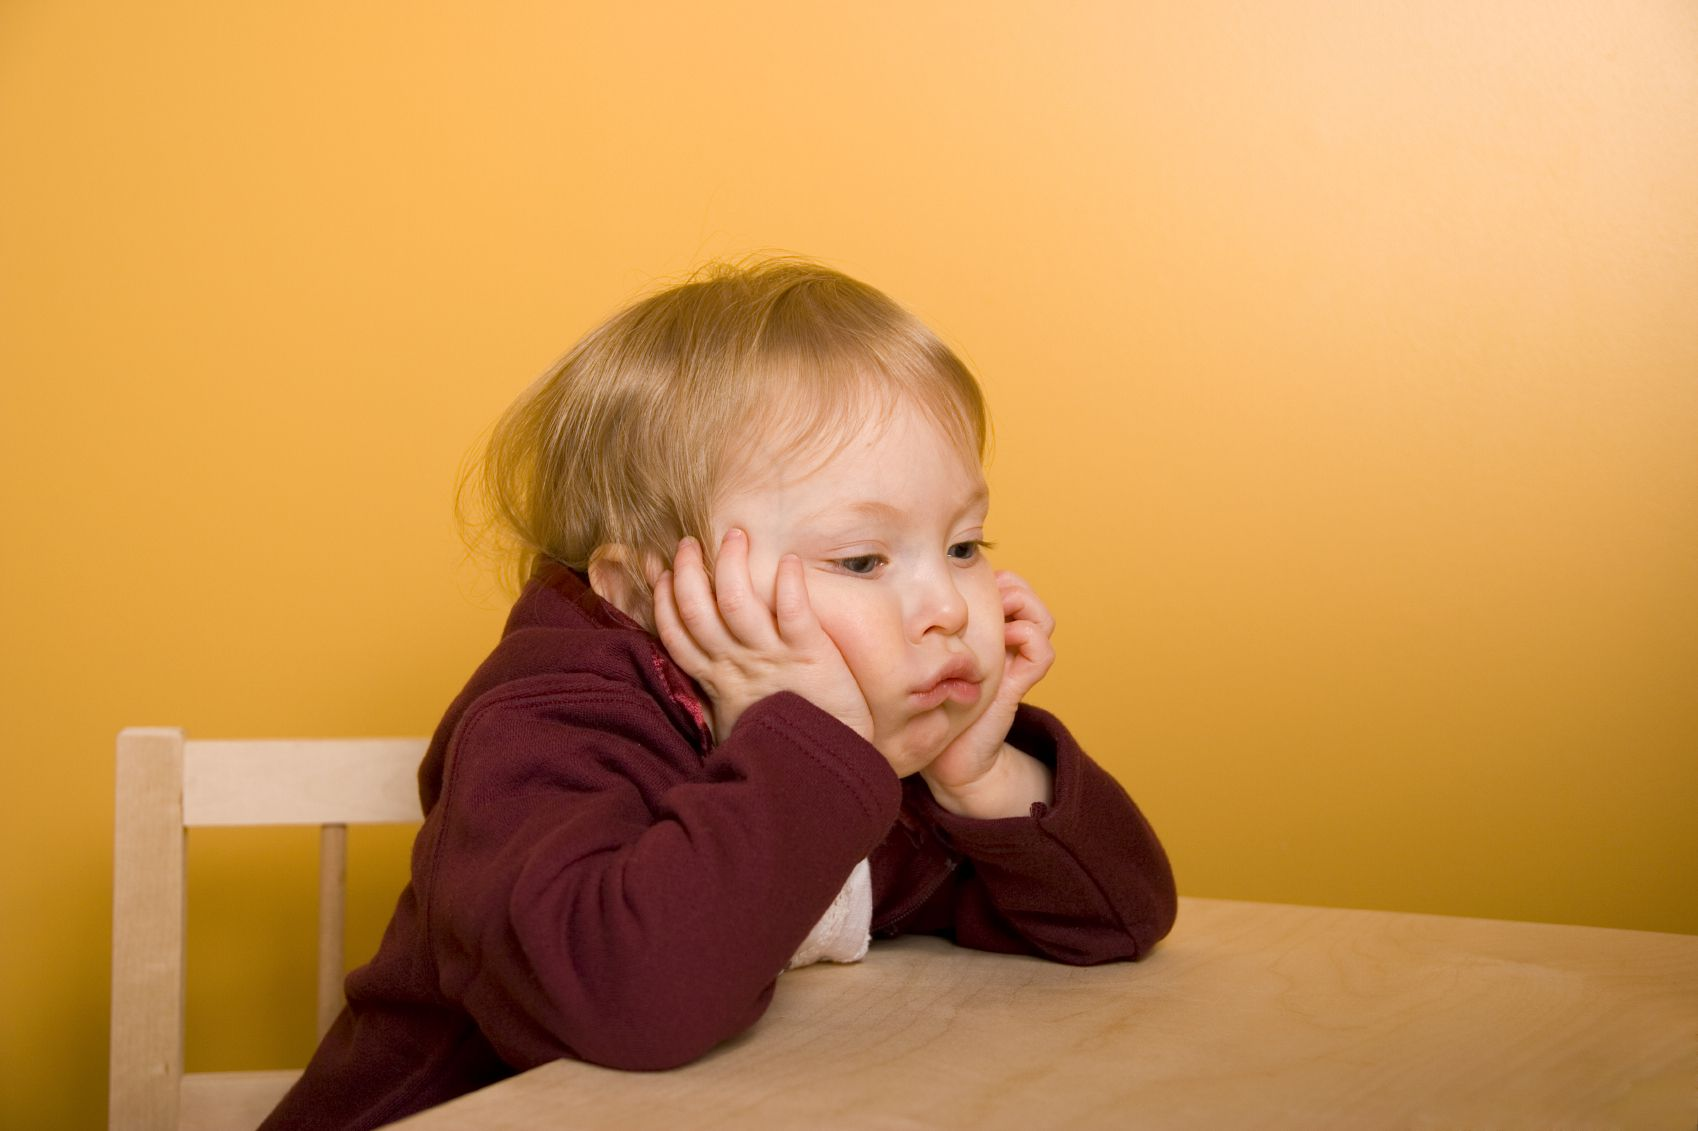 How can I encourage my 5-year-old to take responsibility and apologize when he behaves badly?